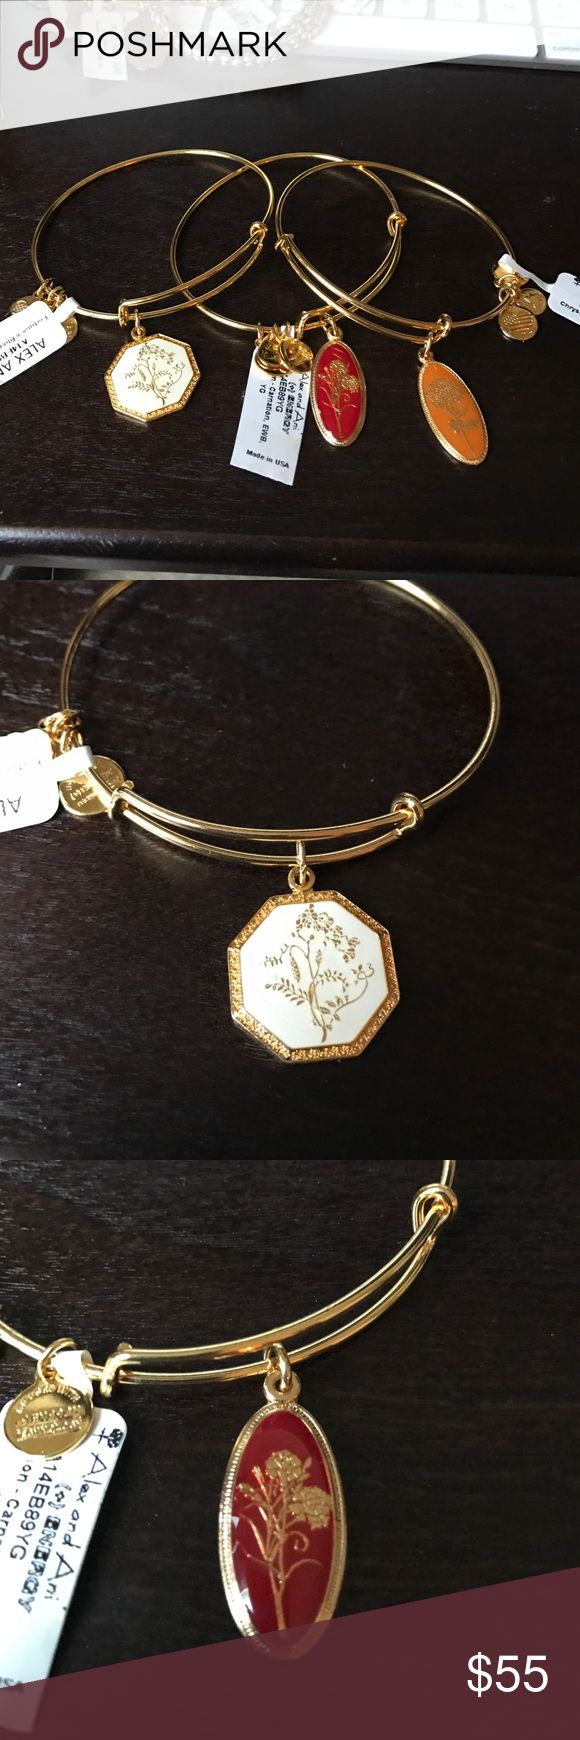 ❣️Rare❣️ set of Shiny gold Alex and Ani bracelets Set of 3 Alex and Ani shiny gold bracelets. Set includes golden flower, love potion carnation and fortune and bliss. Beautiful set and new with retail tags Alex & Ani Jewelry Bracelets